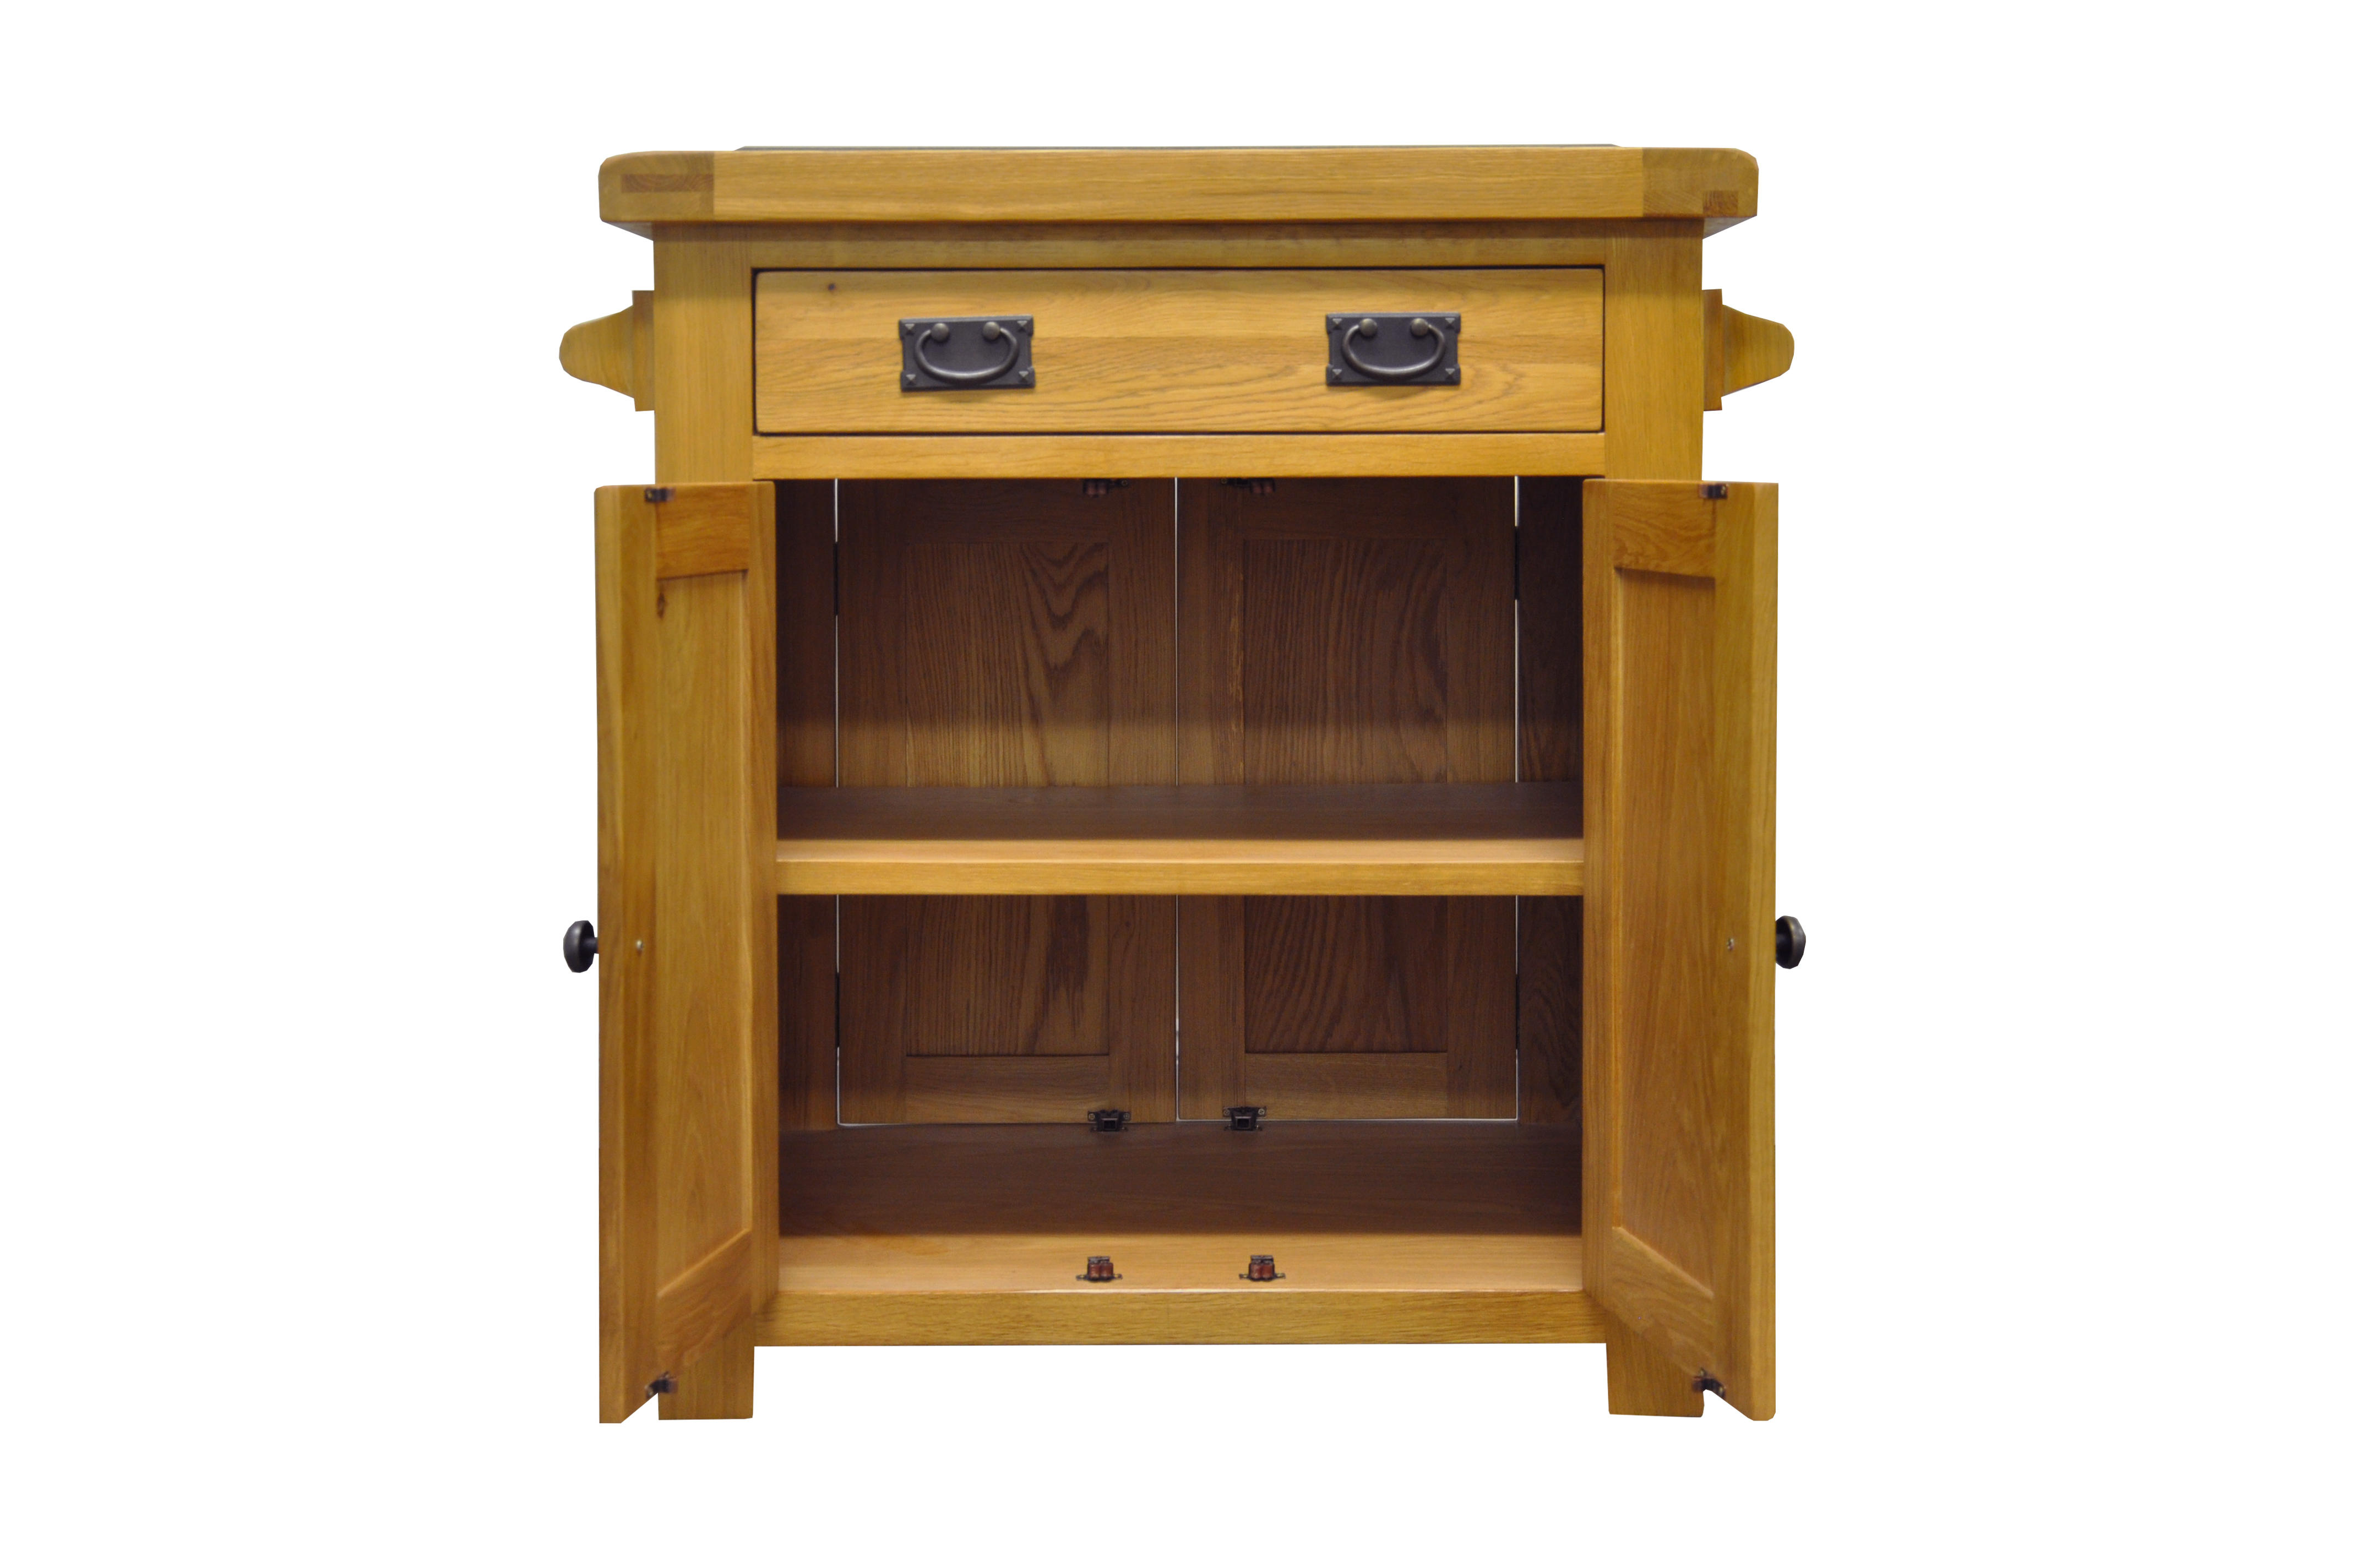 Buy the Kingsford Chunky Oak Small Kitchen Island at Furniture Octopus